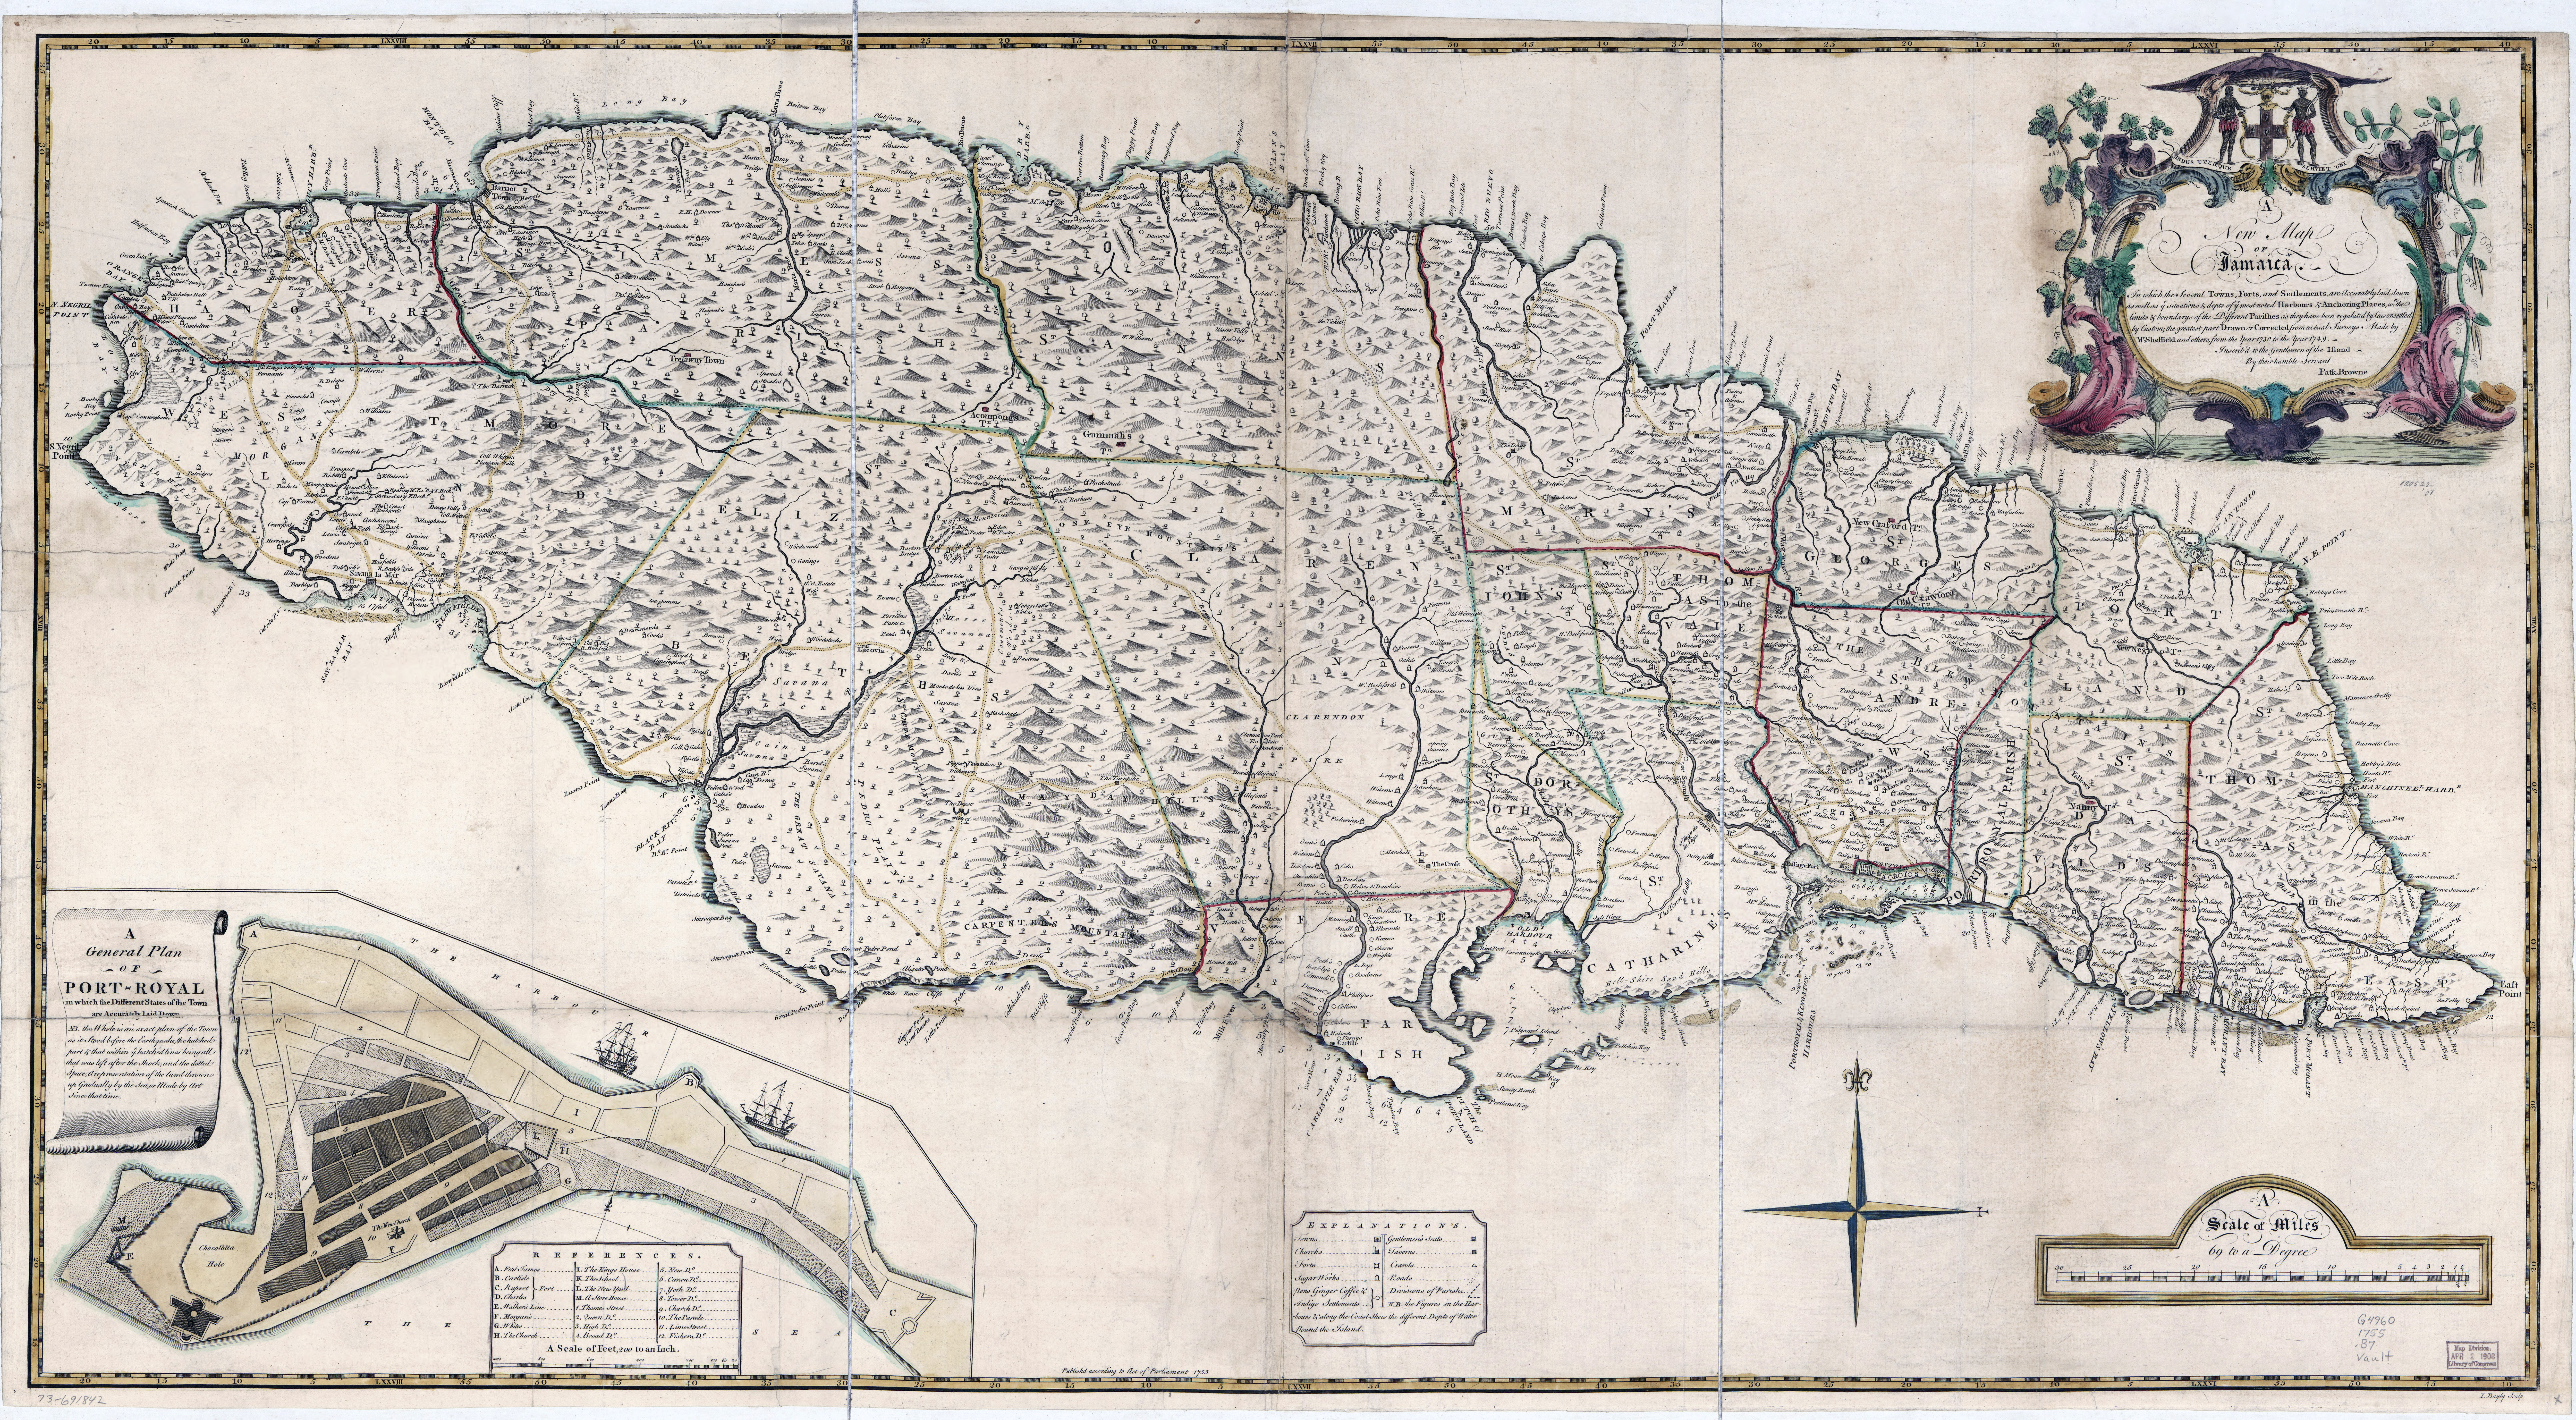 Large scale detailed old political and administrative map of Jamaica